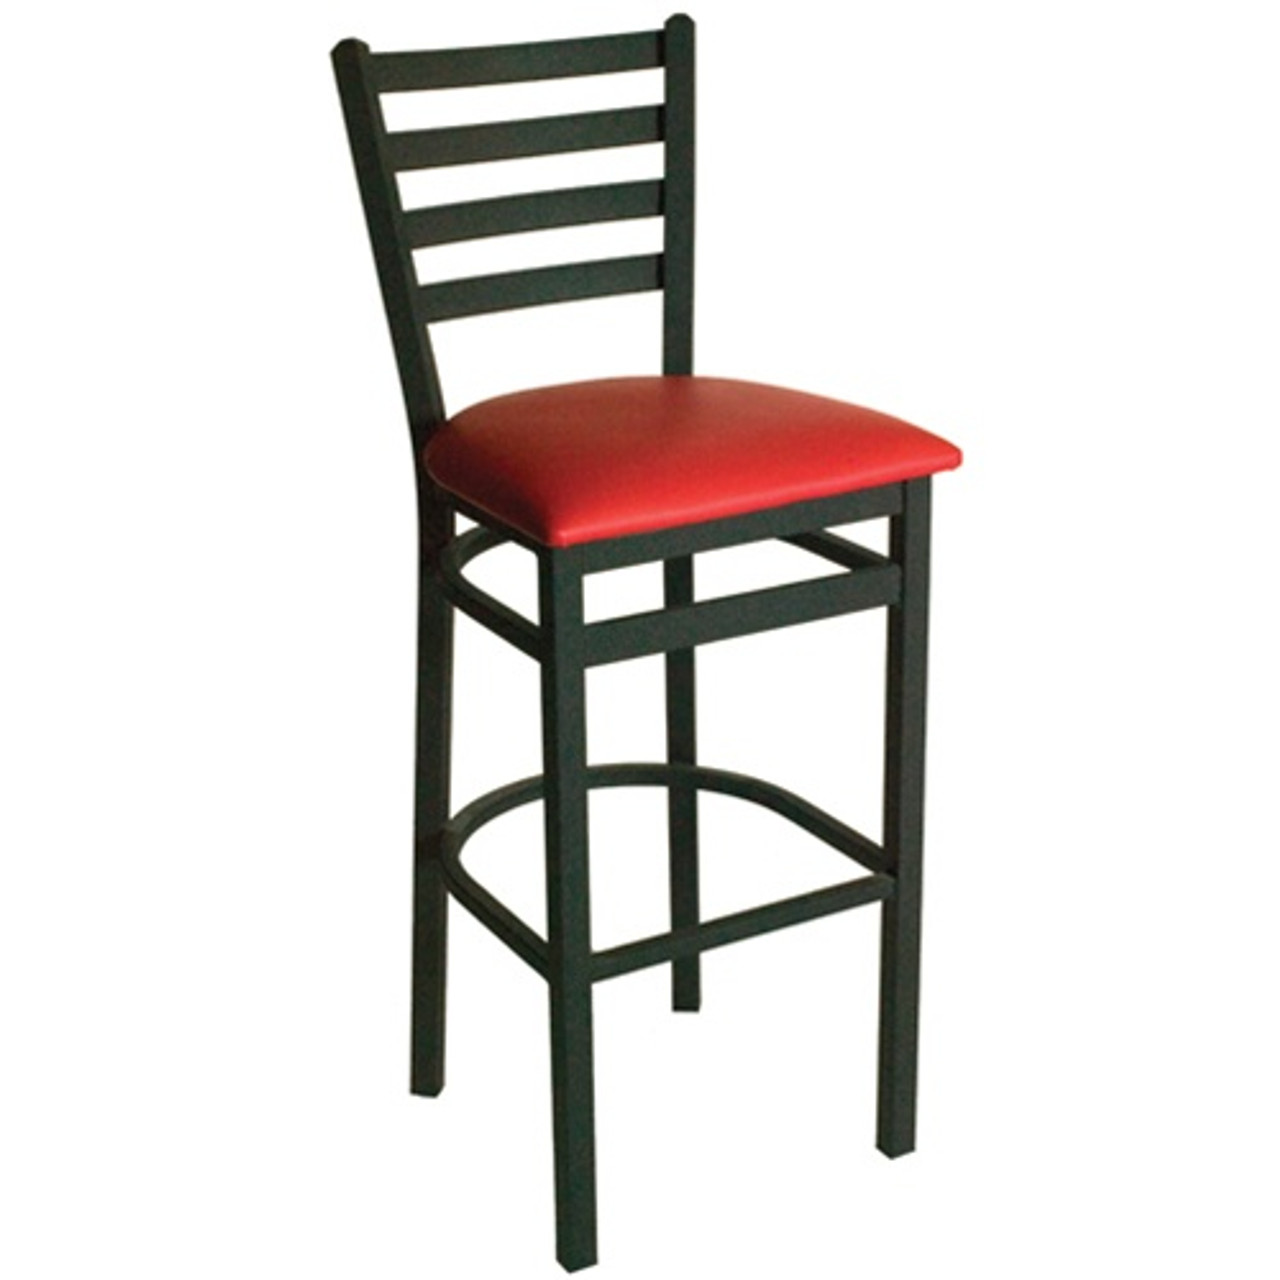 Picture of: Bfm Seating Lima Metal Ladder Back Restaurant Bar Stool With Padded Seat 2160b Sbv Pub Bar Stools Commercial Bar Stools